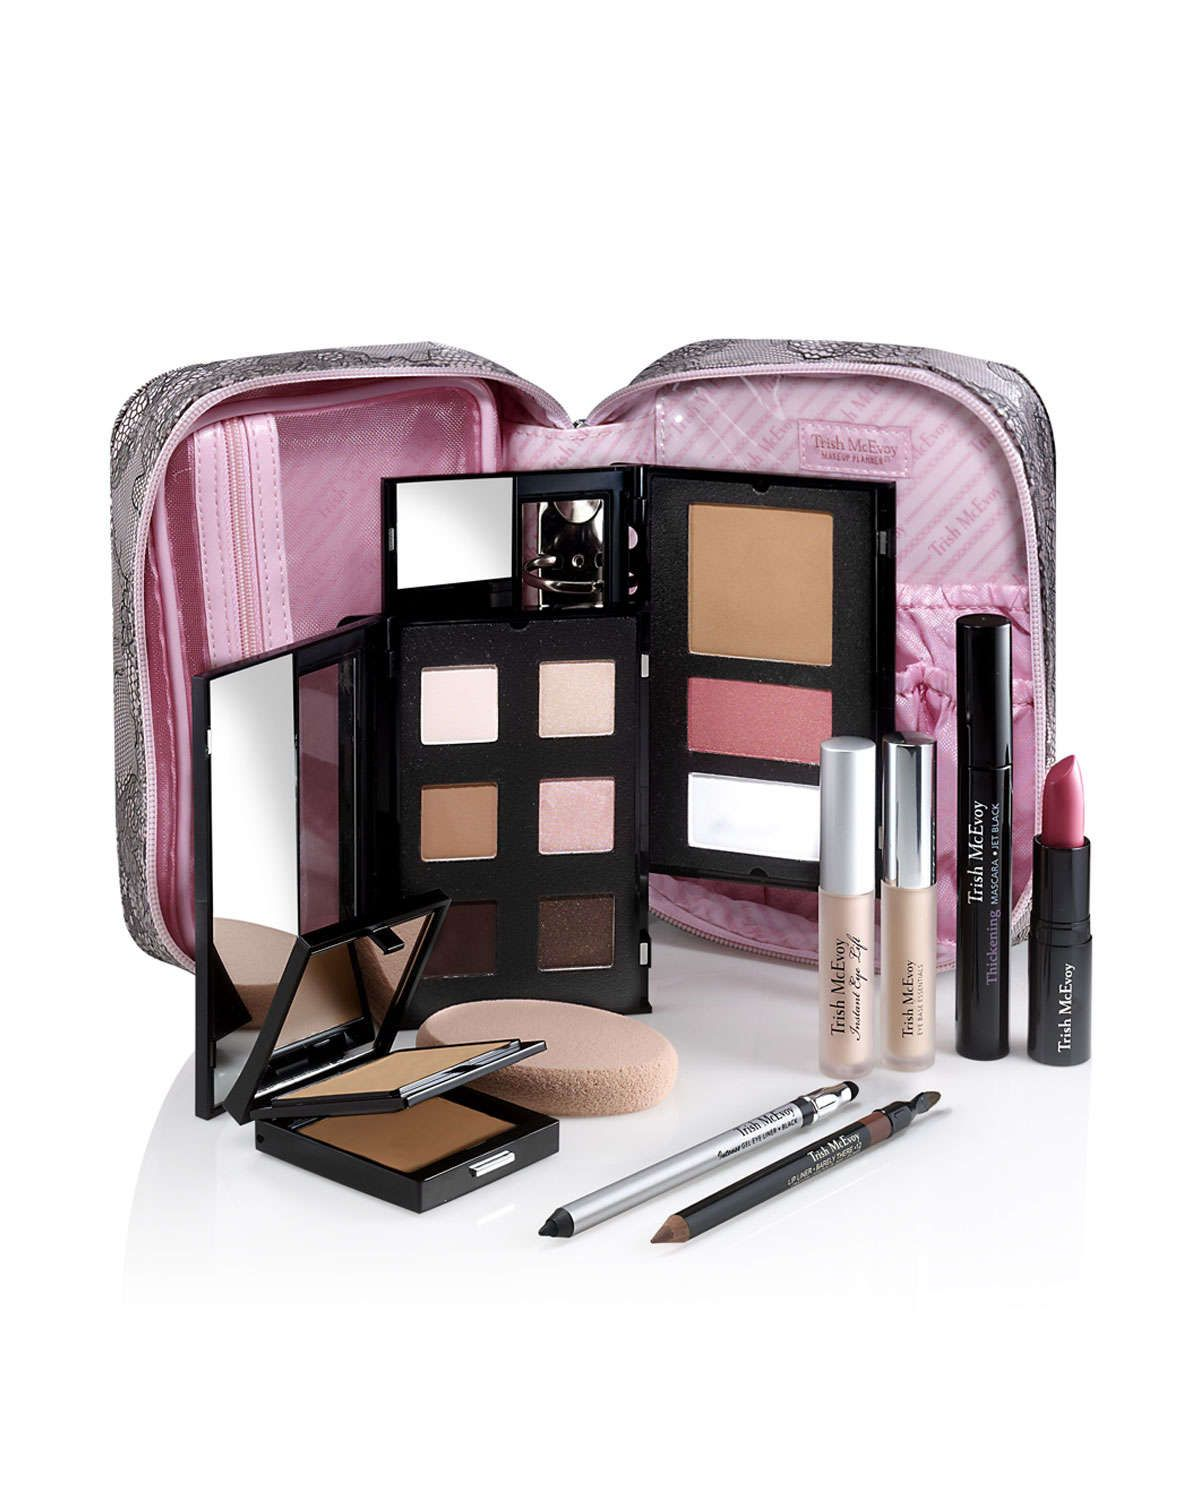 Trish McEvoy Limited Edition Power of Makeup Planner, Pure